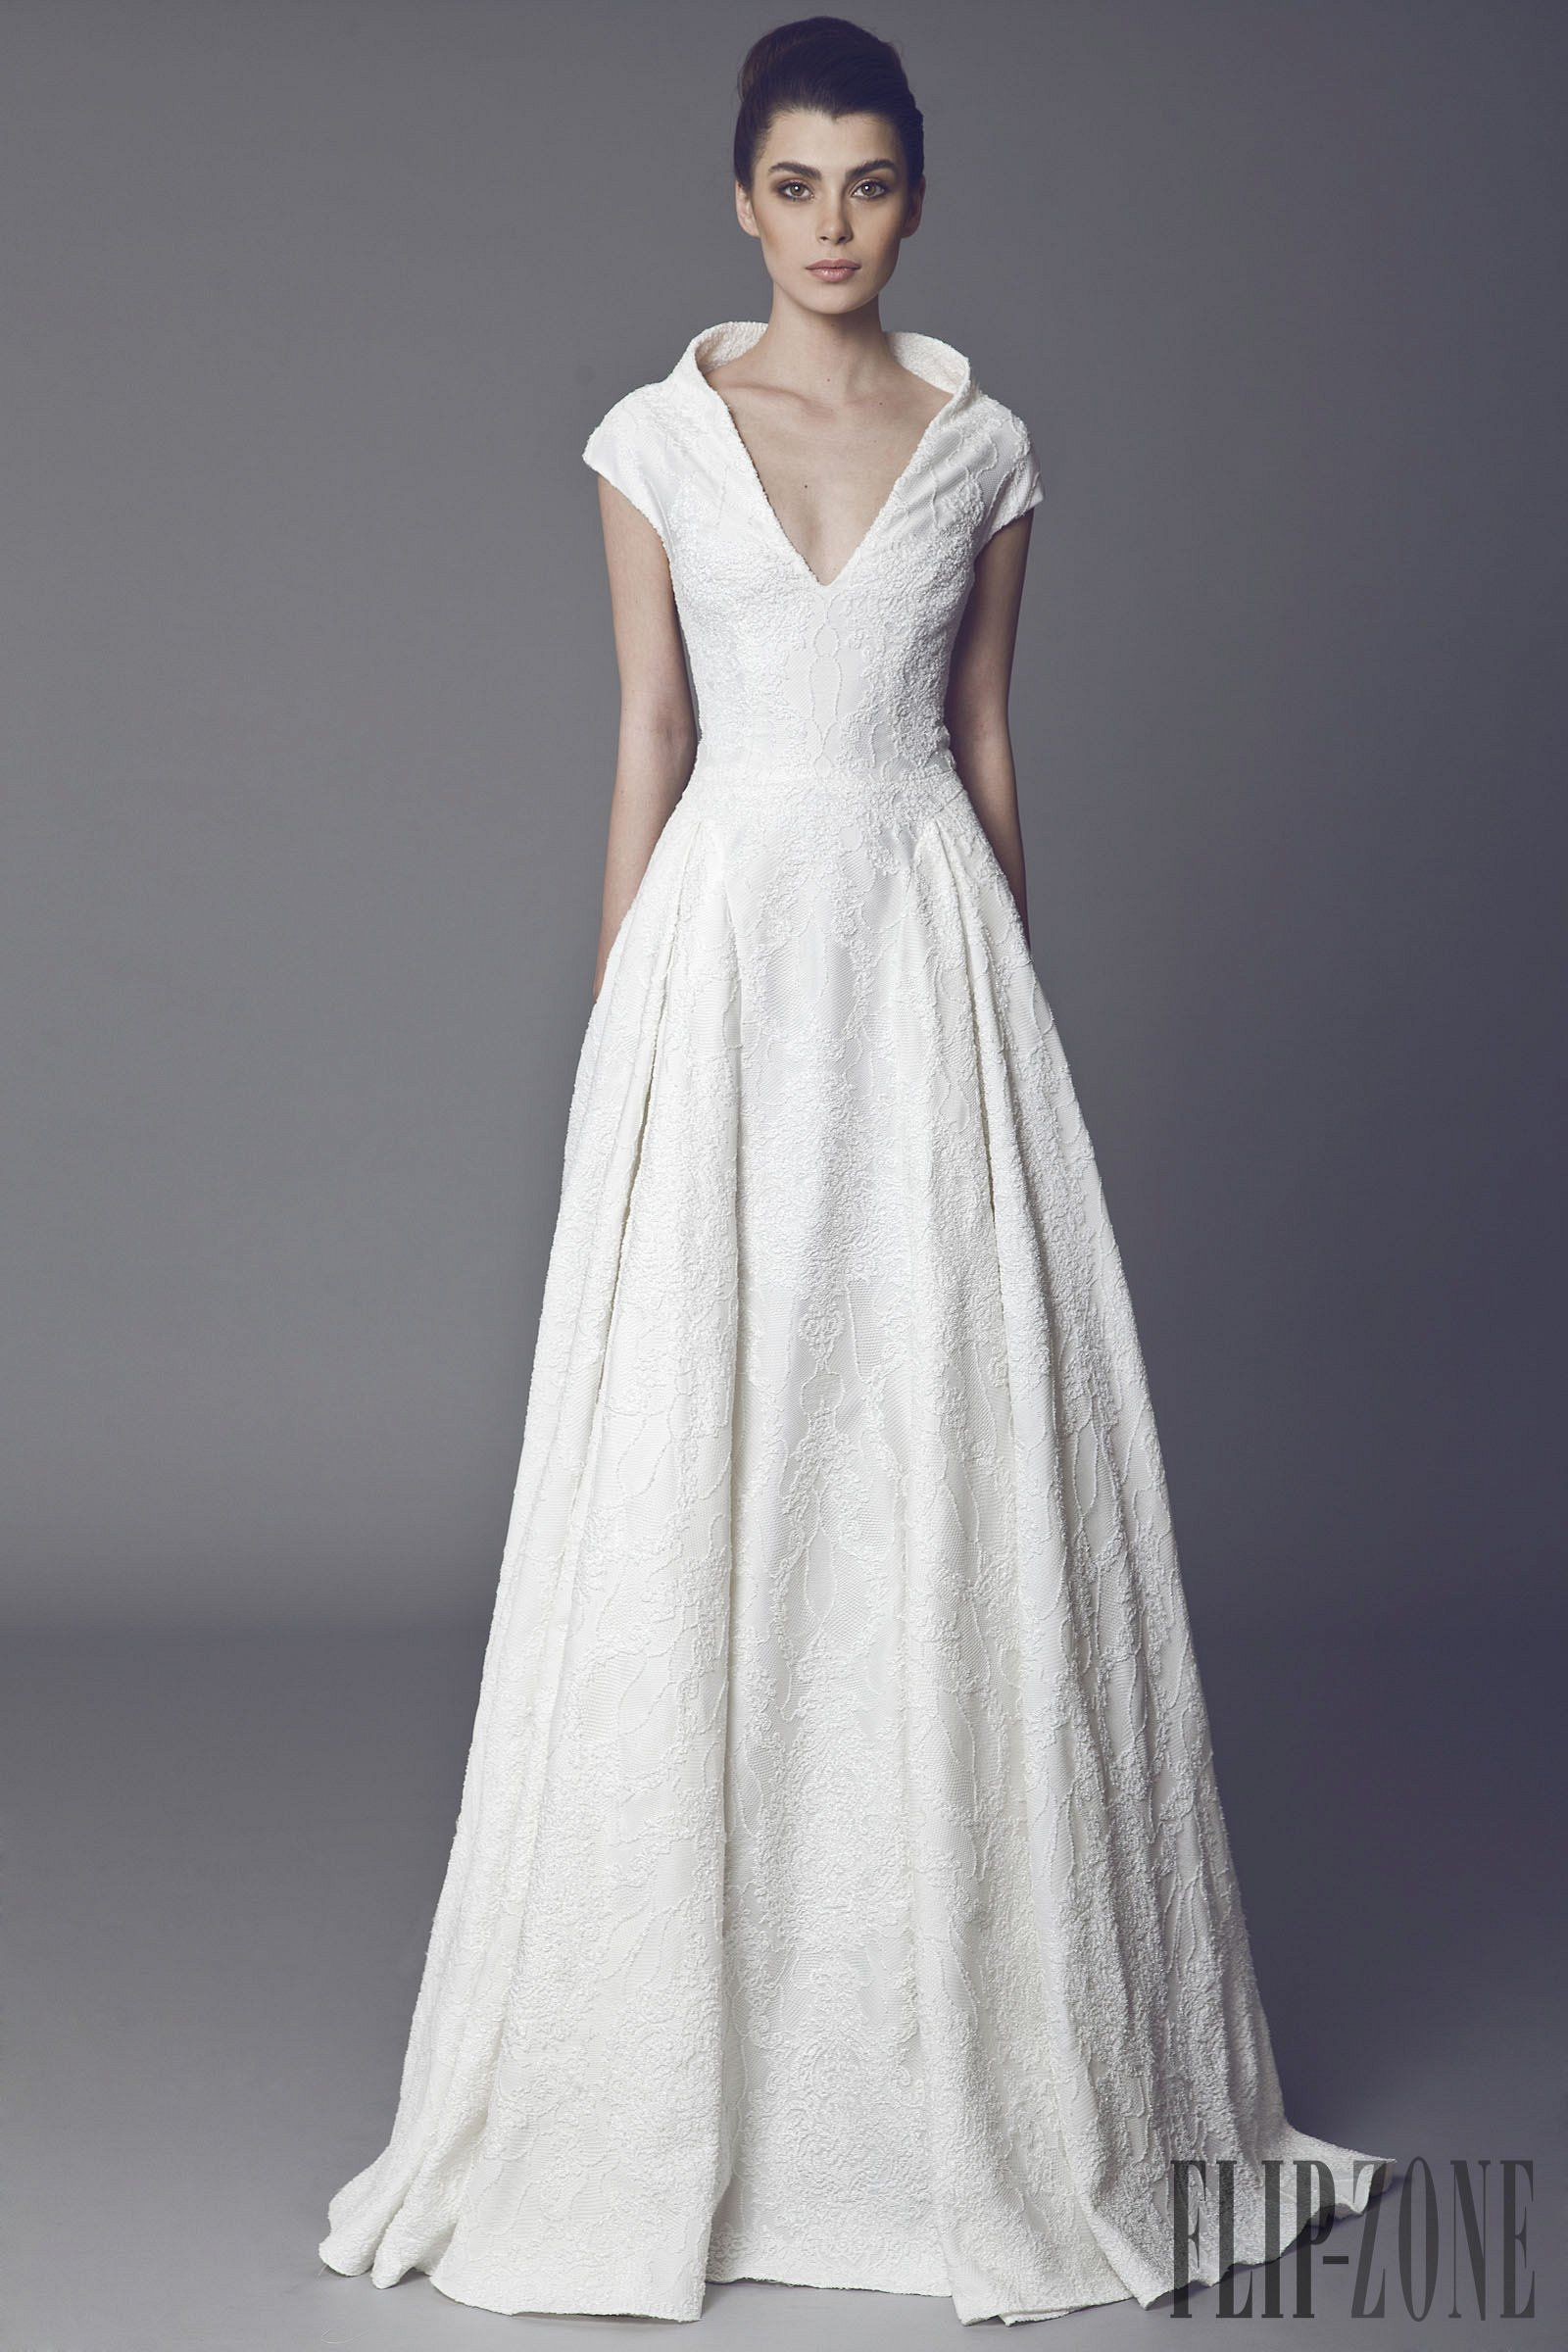 Wedding dress with collar  Tony Ward  collection  Bridal  Wedding  Pinterest  Tony ward